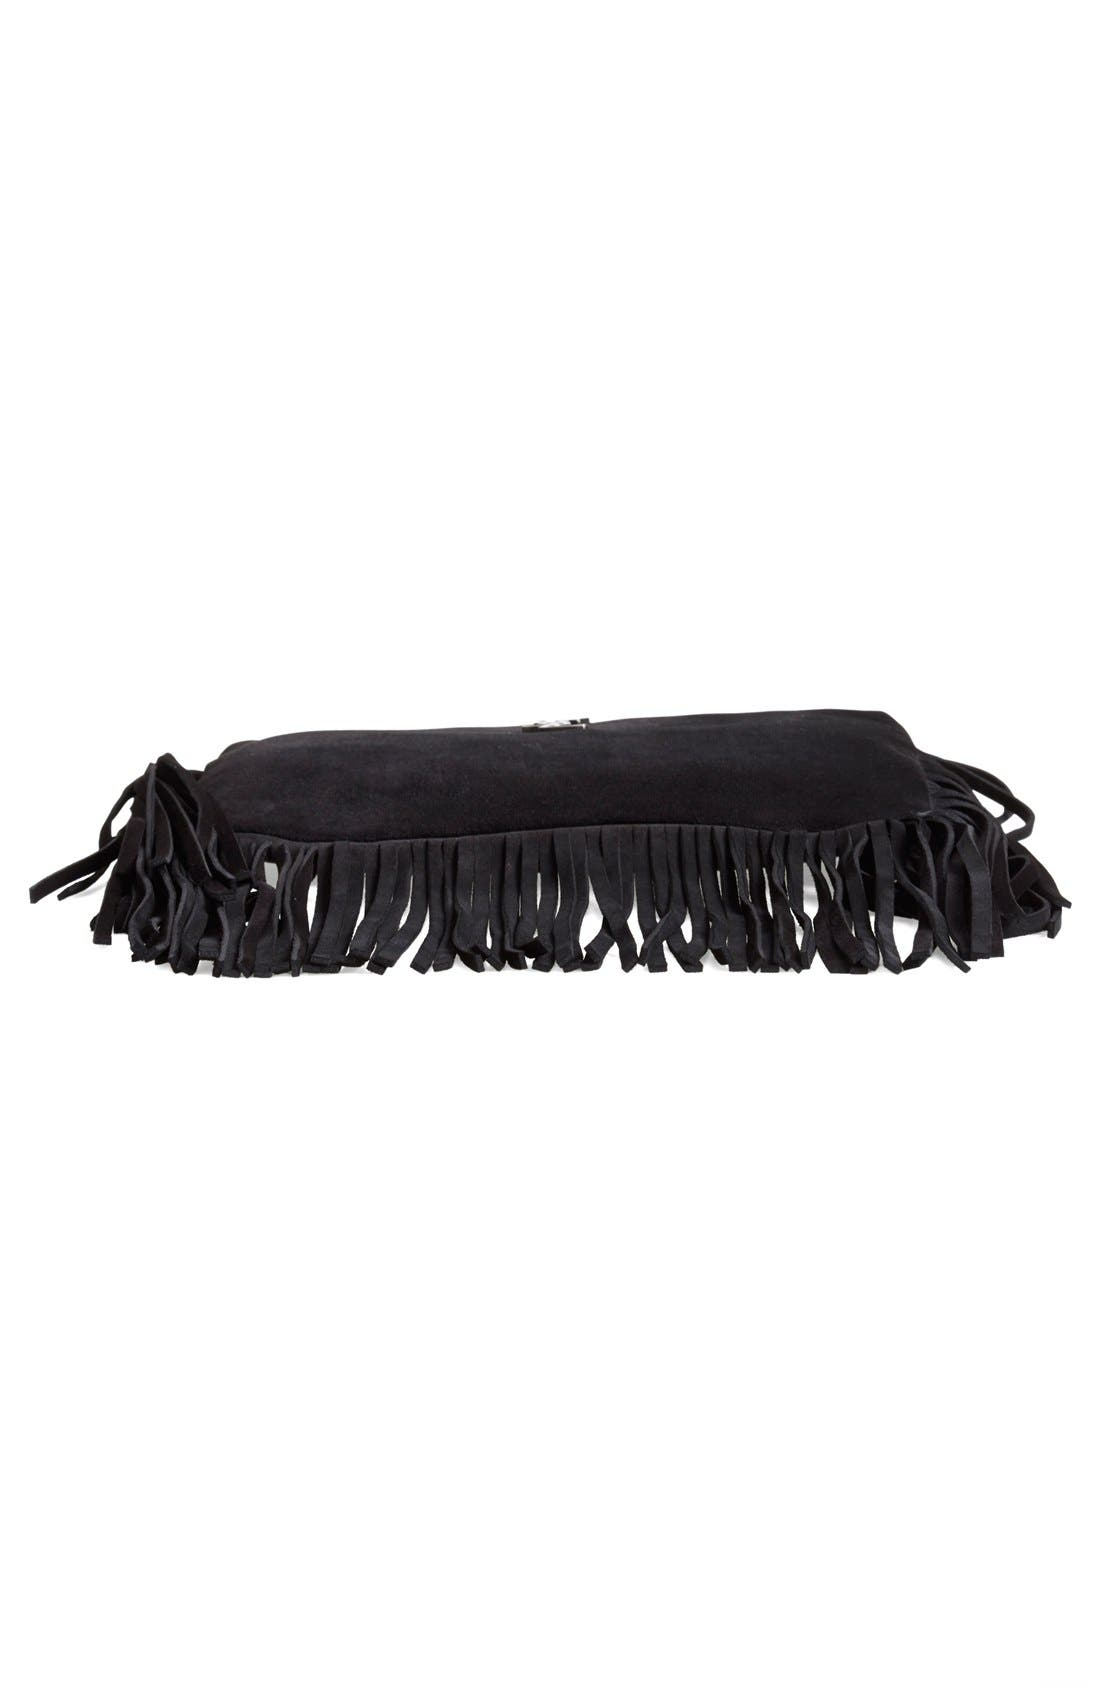 Fringe Suede Crossbody Bag,                             Alternate thumbnail 6, color,                             001